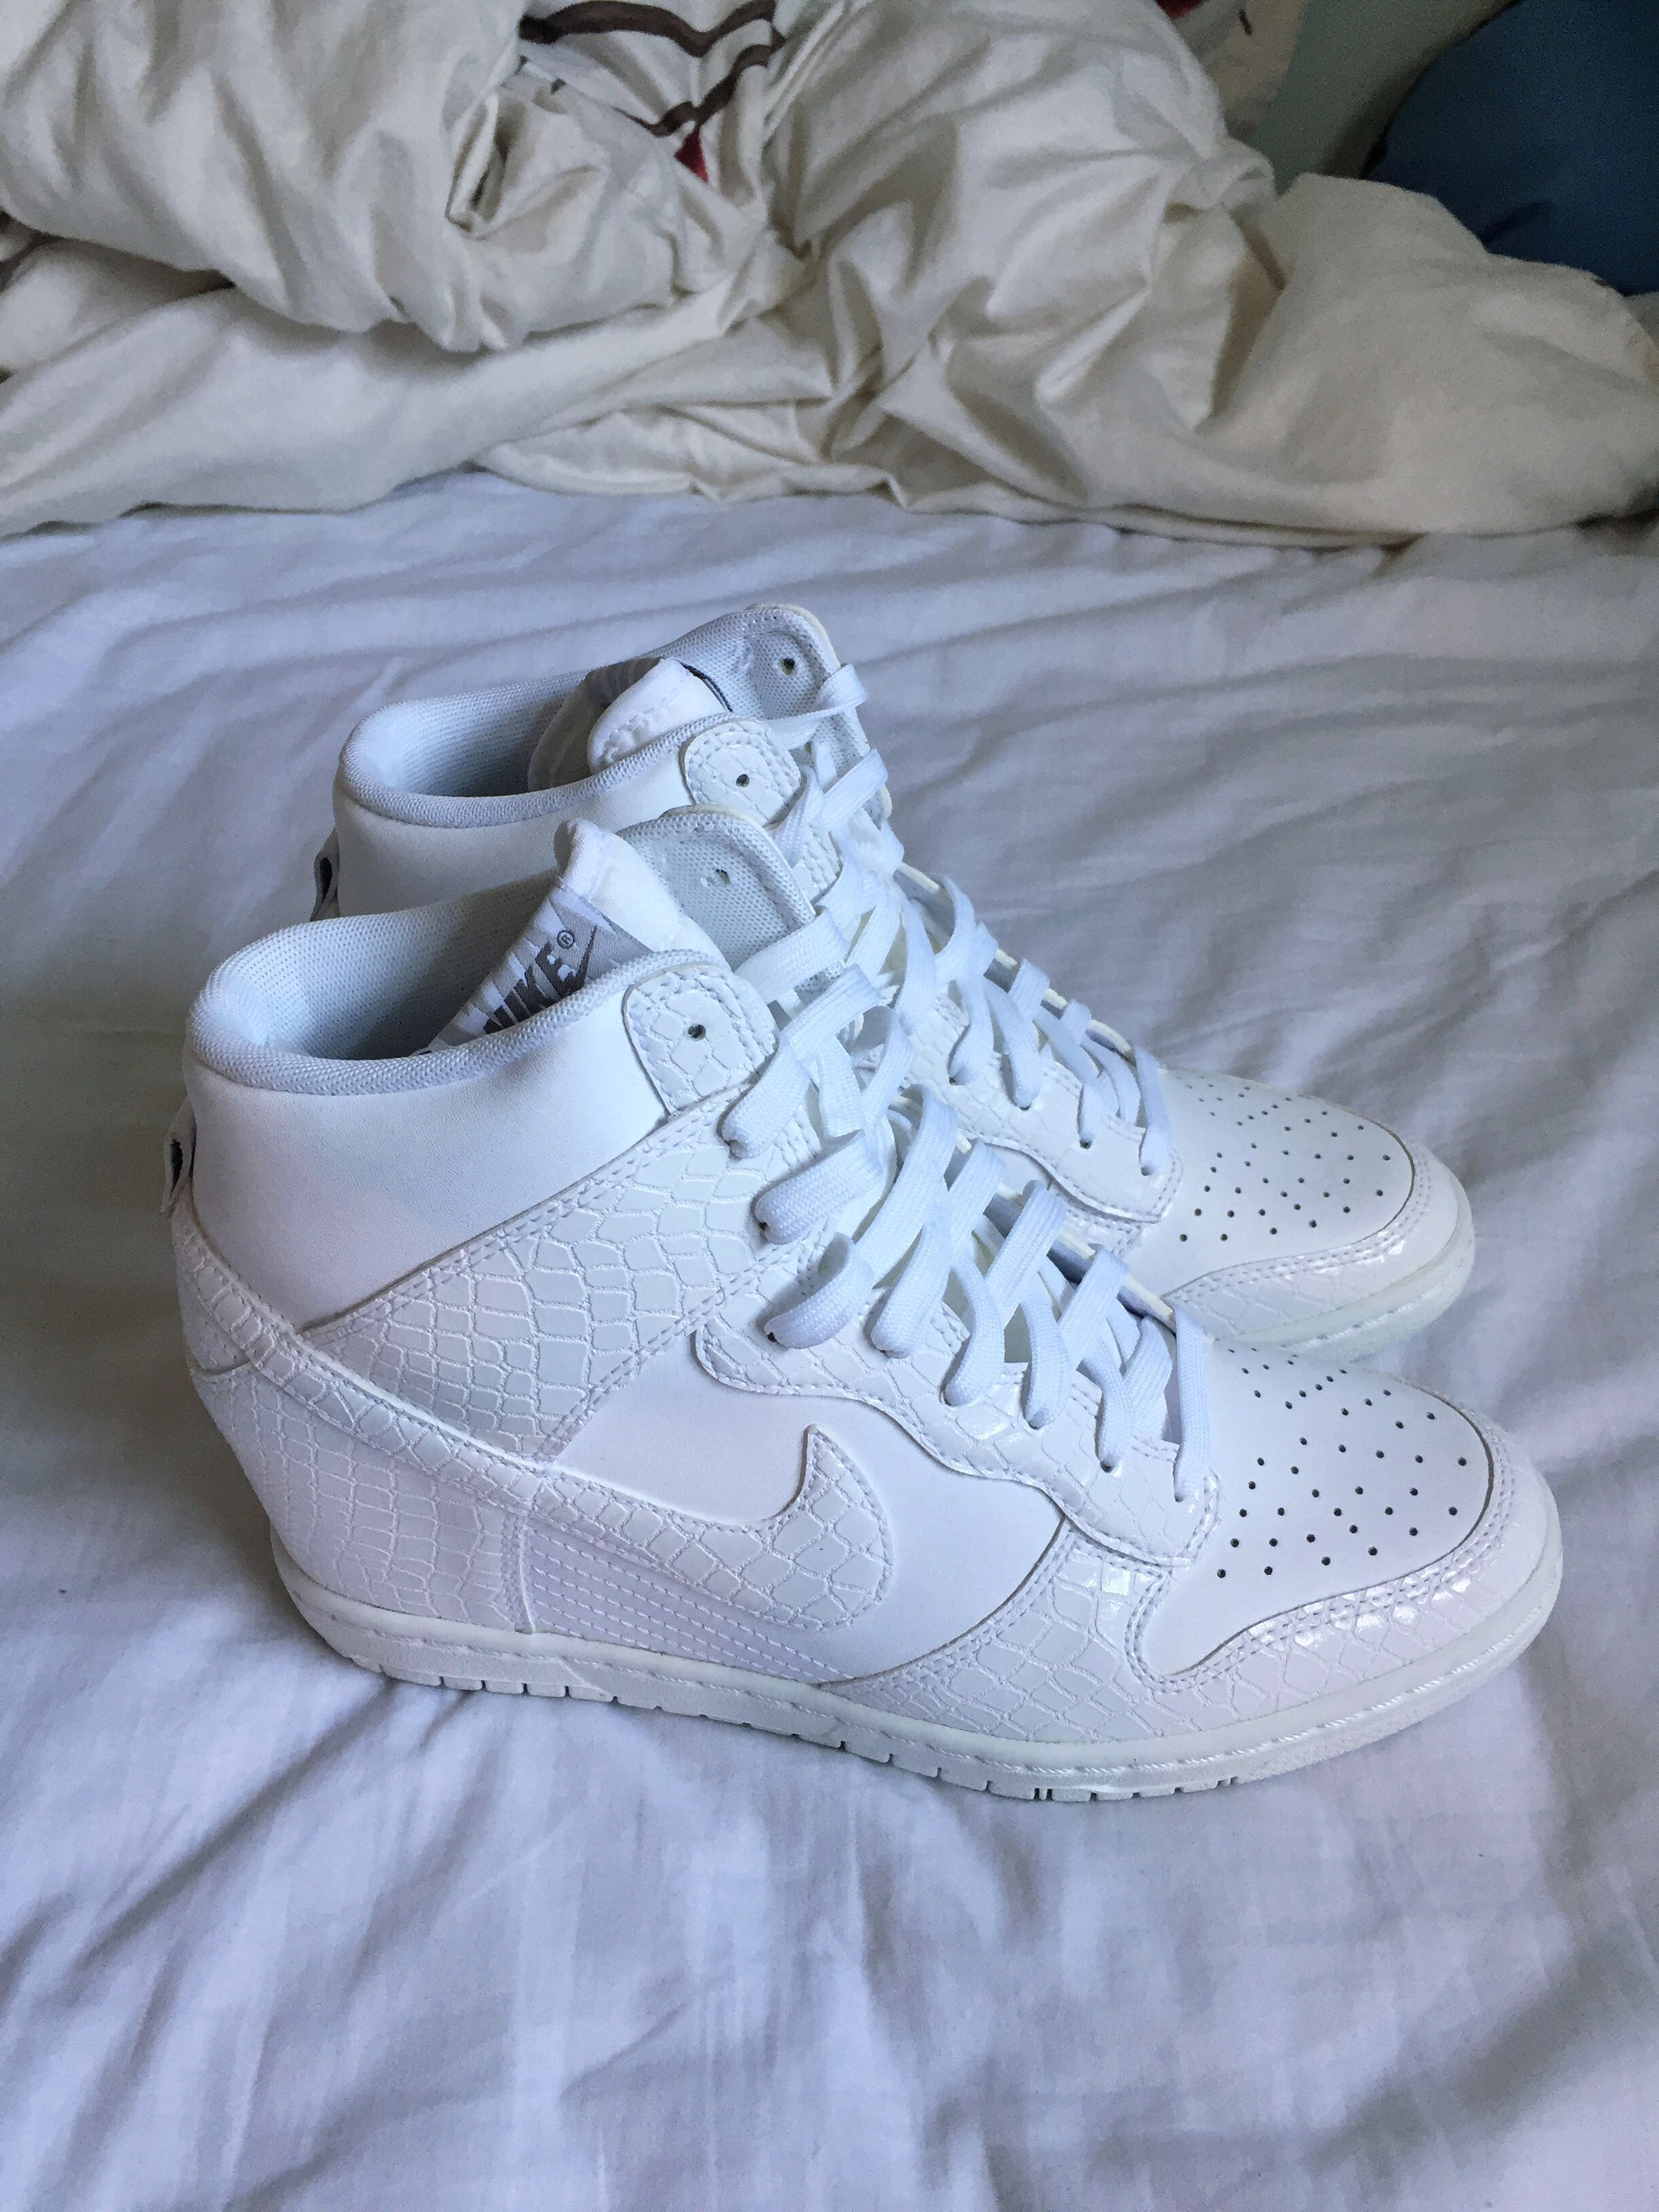 cd4d12e29a8 Nike Dunk Sky Hi White Wedge Sneakers